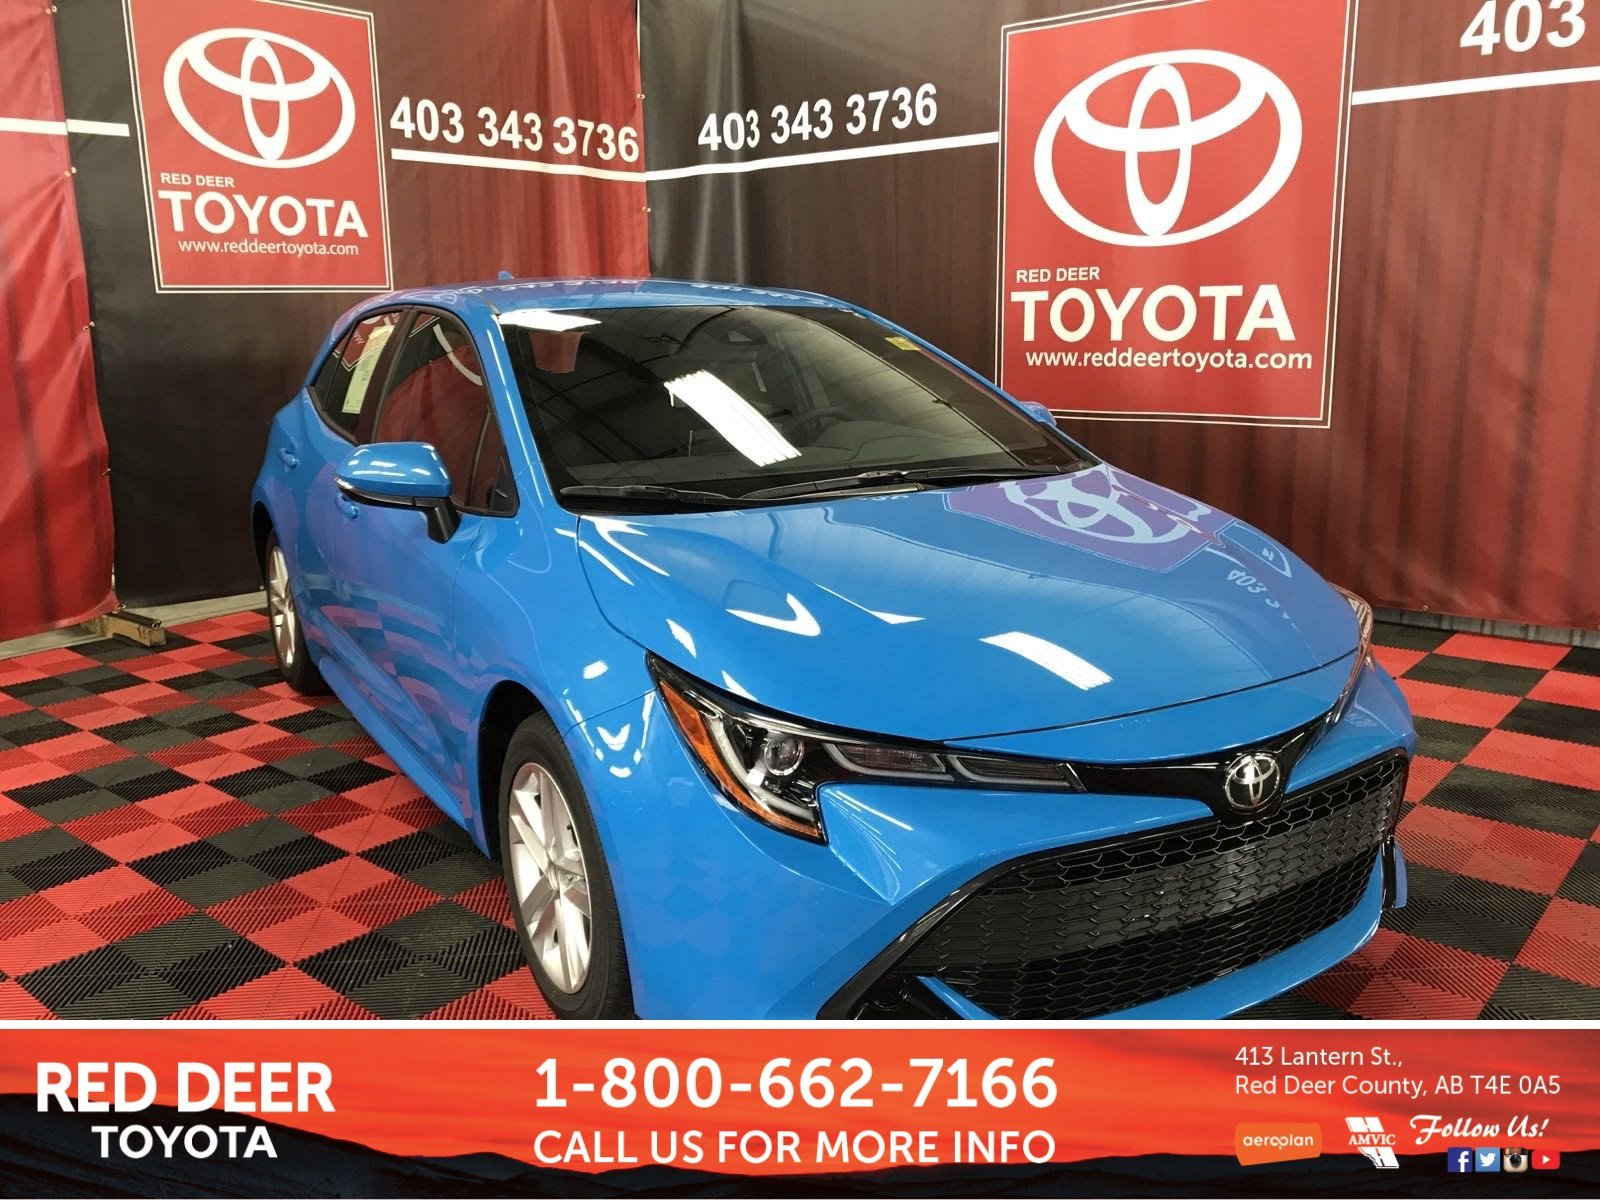 New 2019 Toyota Corolla Hatchback Hatchback in Red Deer County